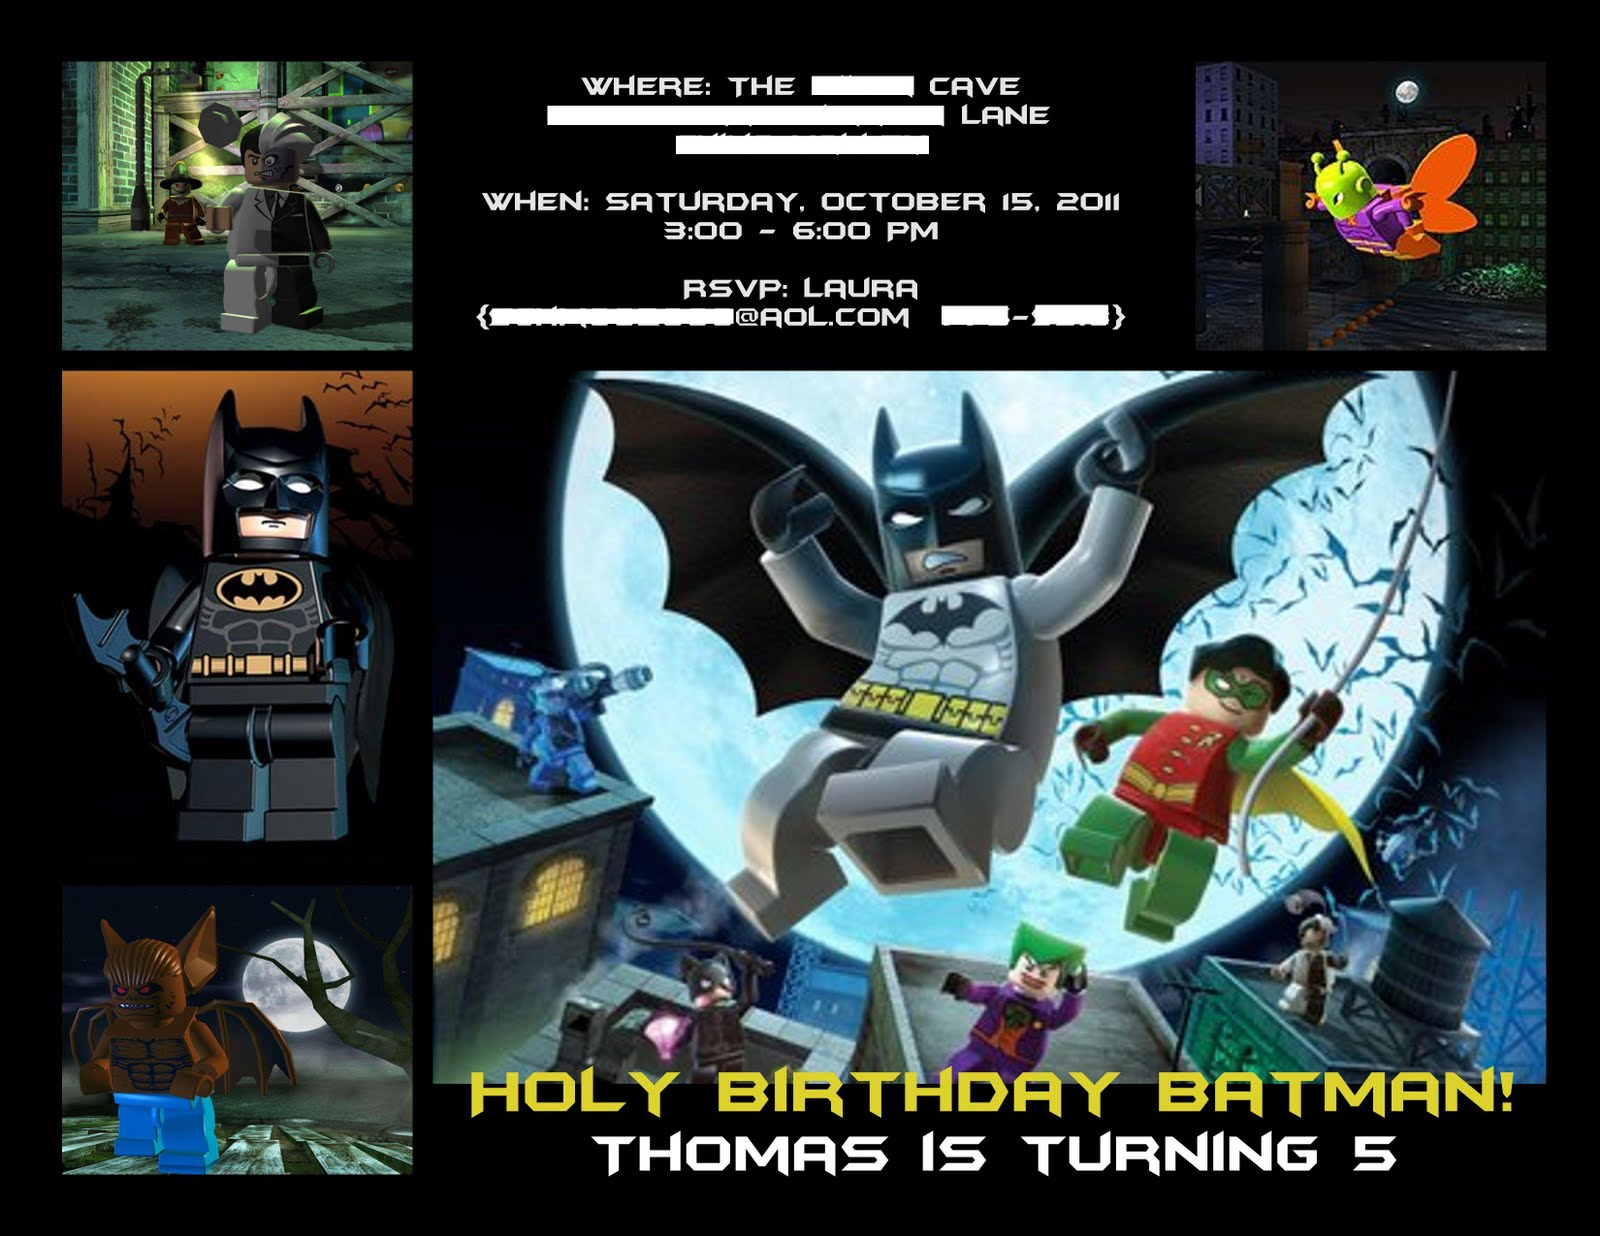 The Invitations Lego Batman